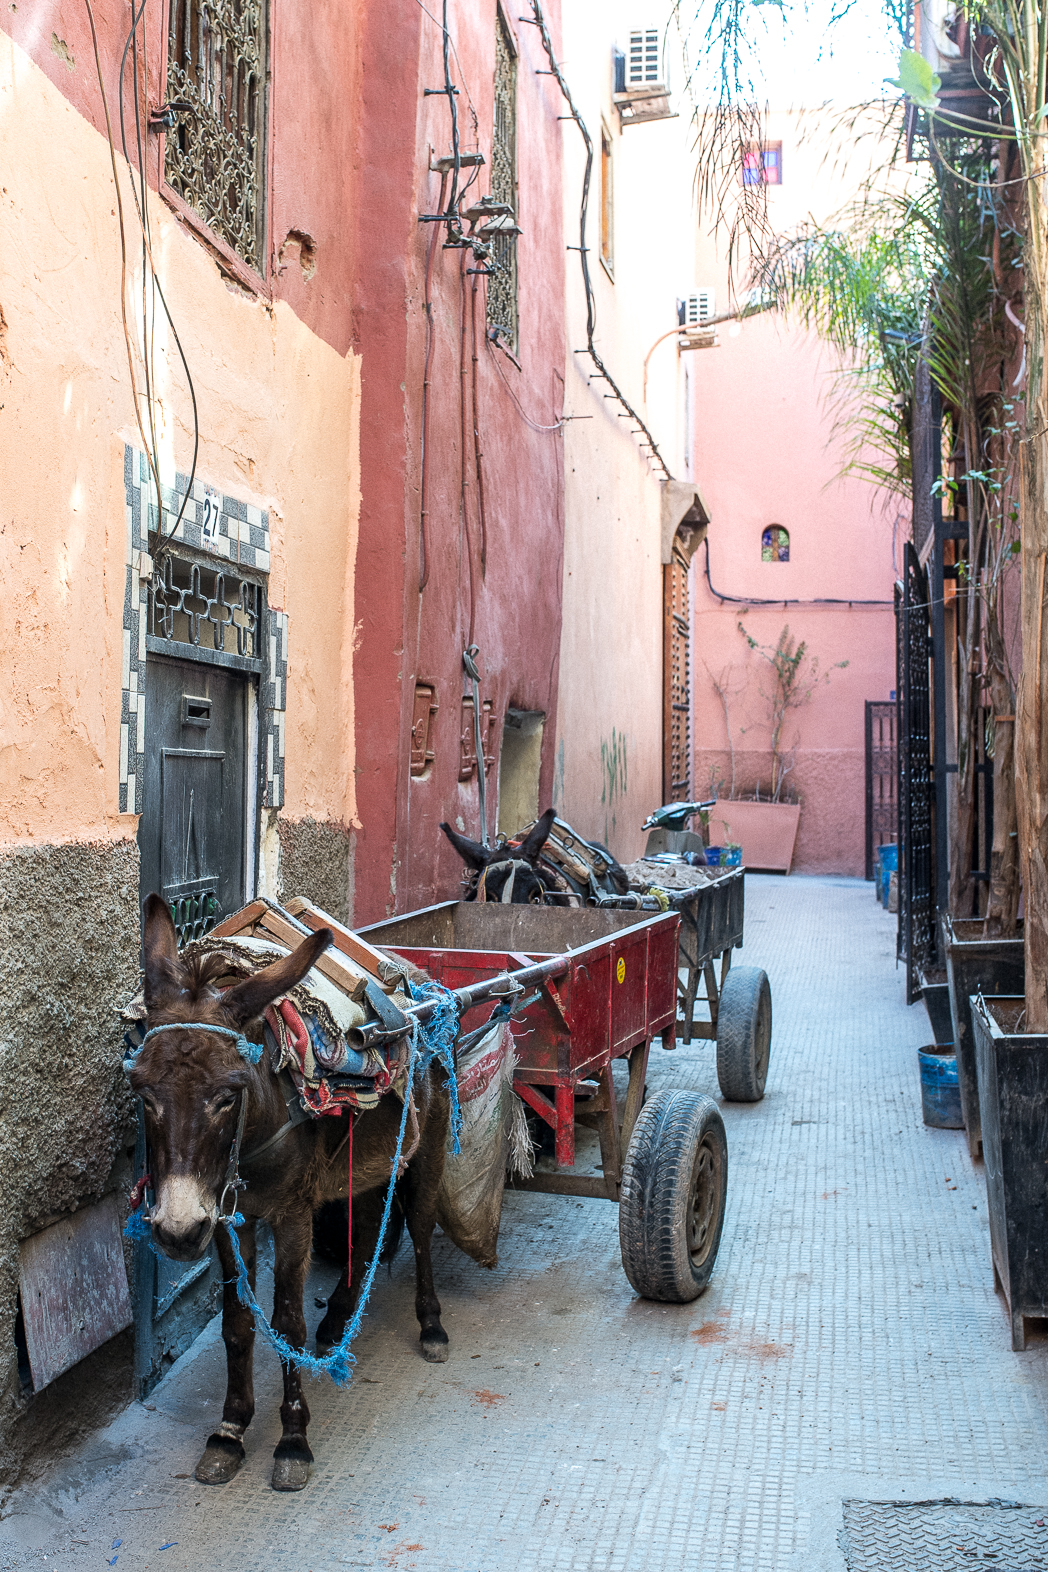 STACIE FLINNER La Sultana Marrakech City Guide-14.jpg